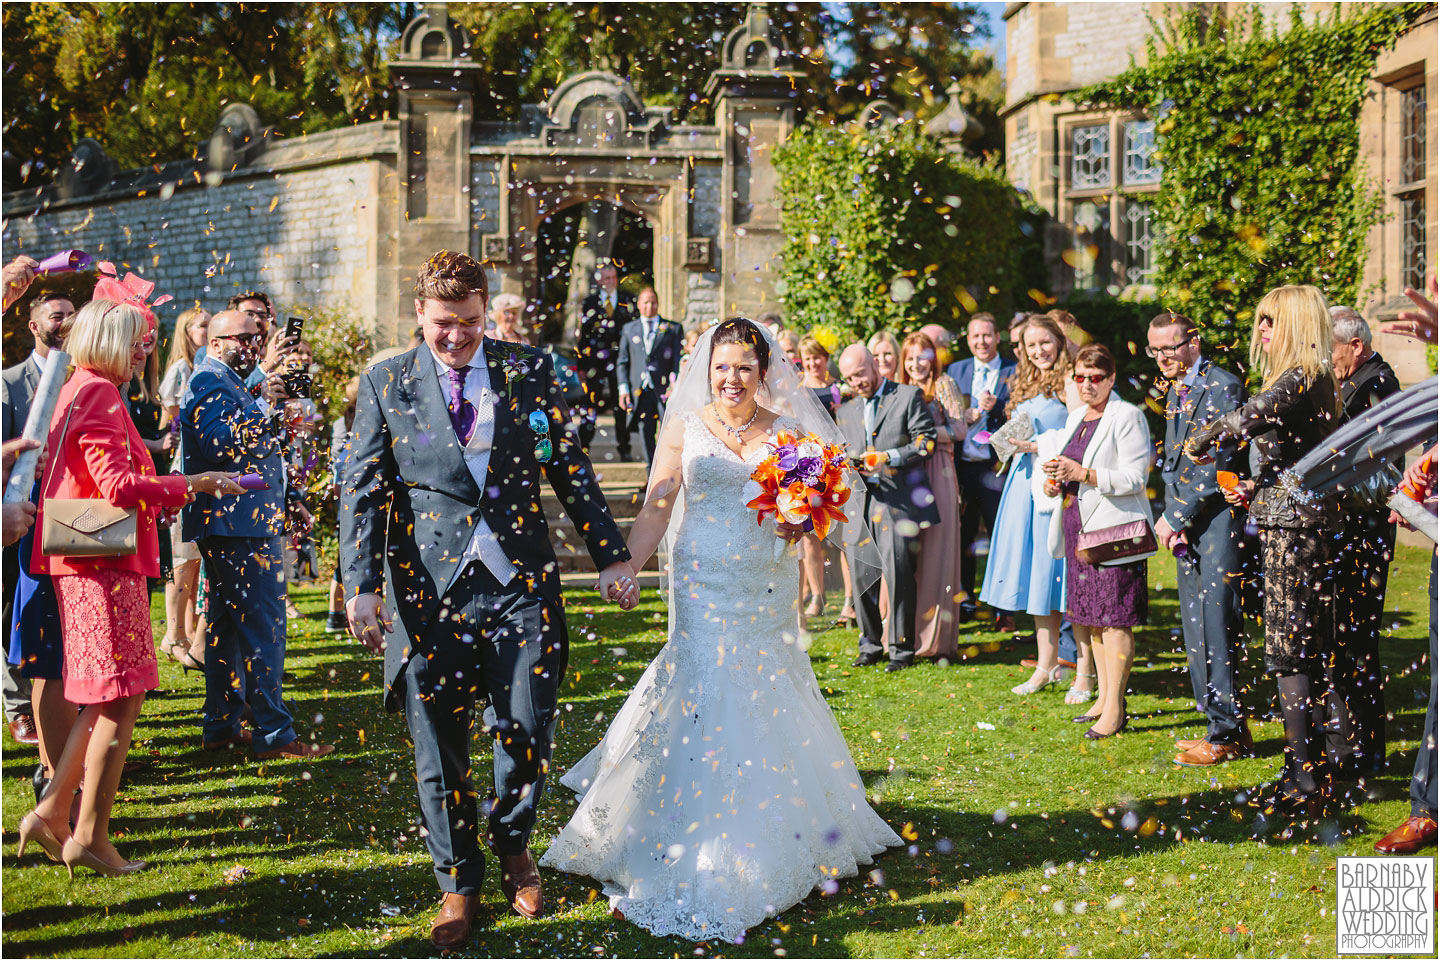 Wedding confetti at Thornbridge Hall Derbyshire Wedding Photos, Thornbridge Hall Wedding Photography, Autumnal Derbyshire Wedding, Derbyshire Wedding Photographer